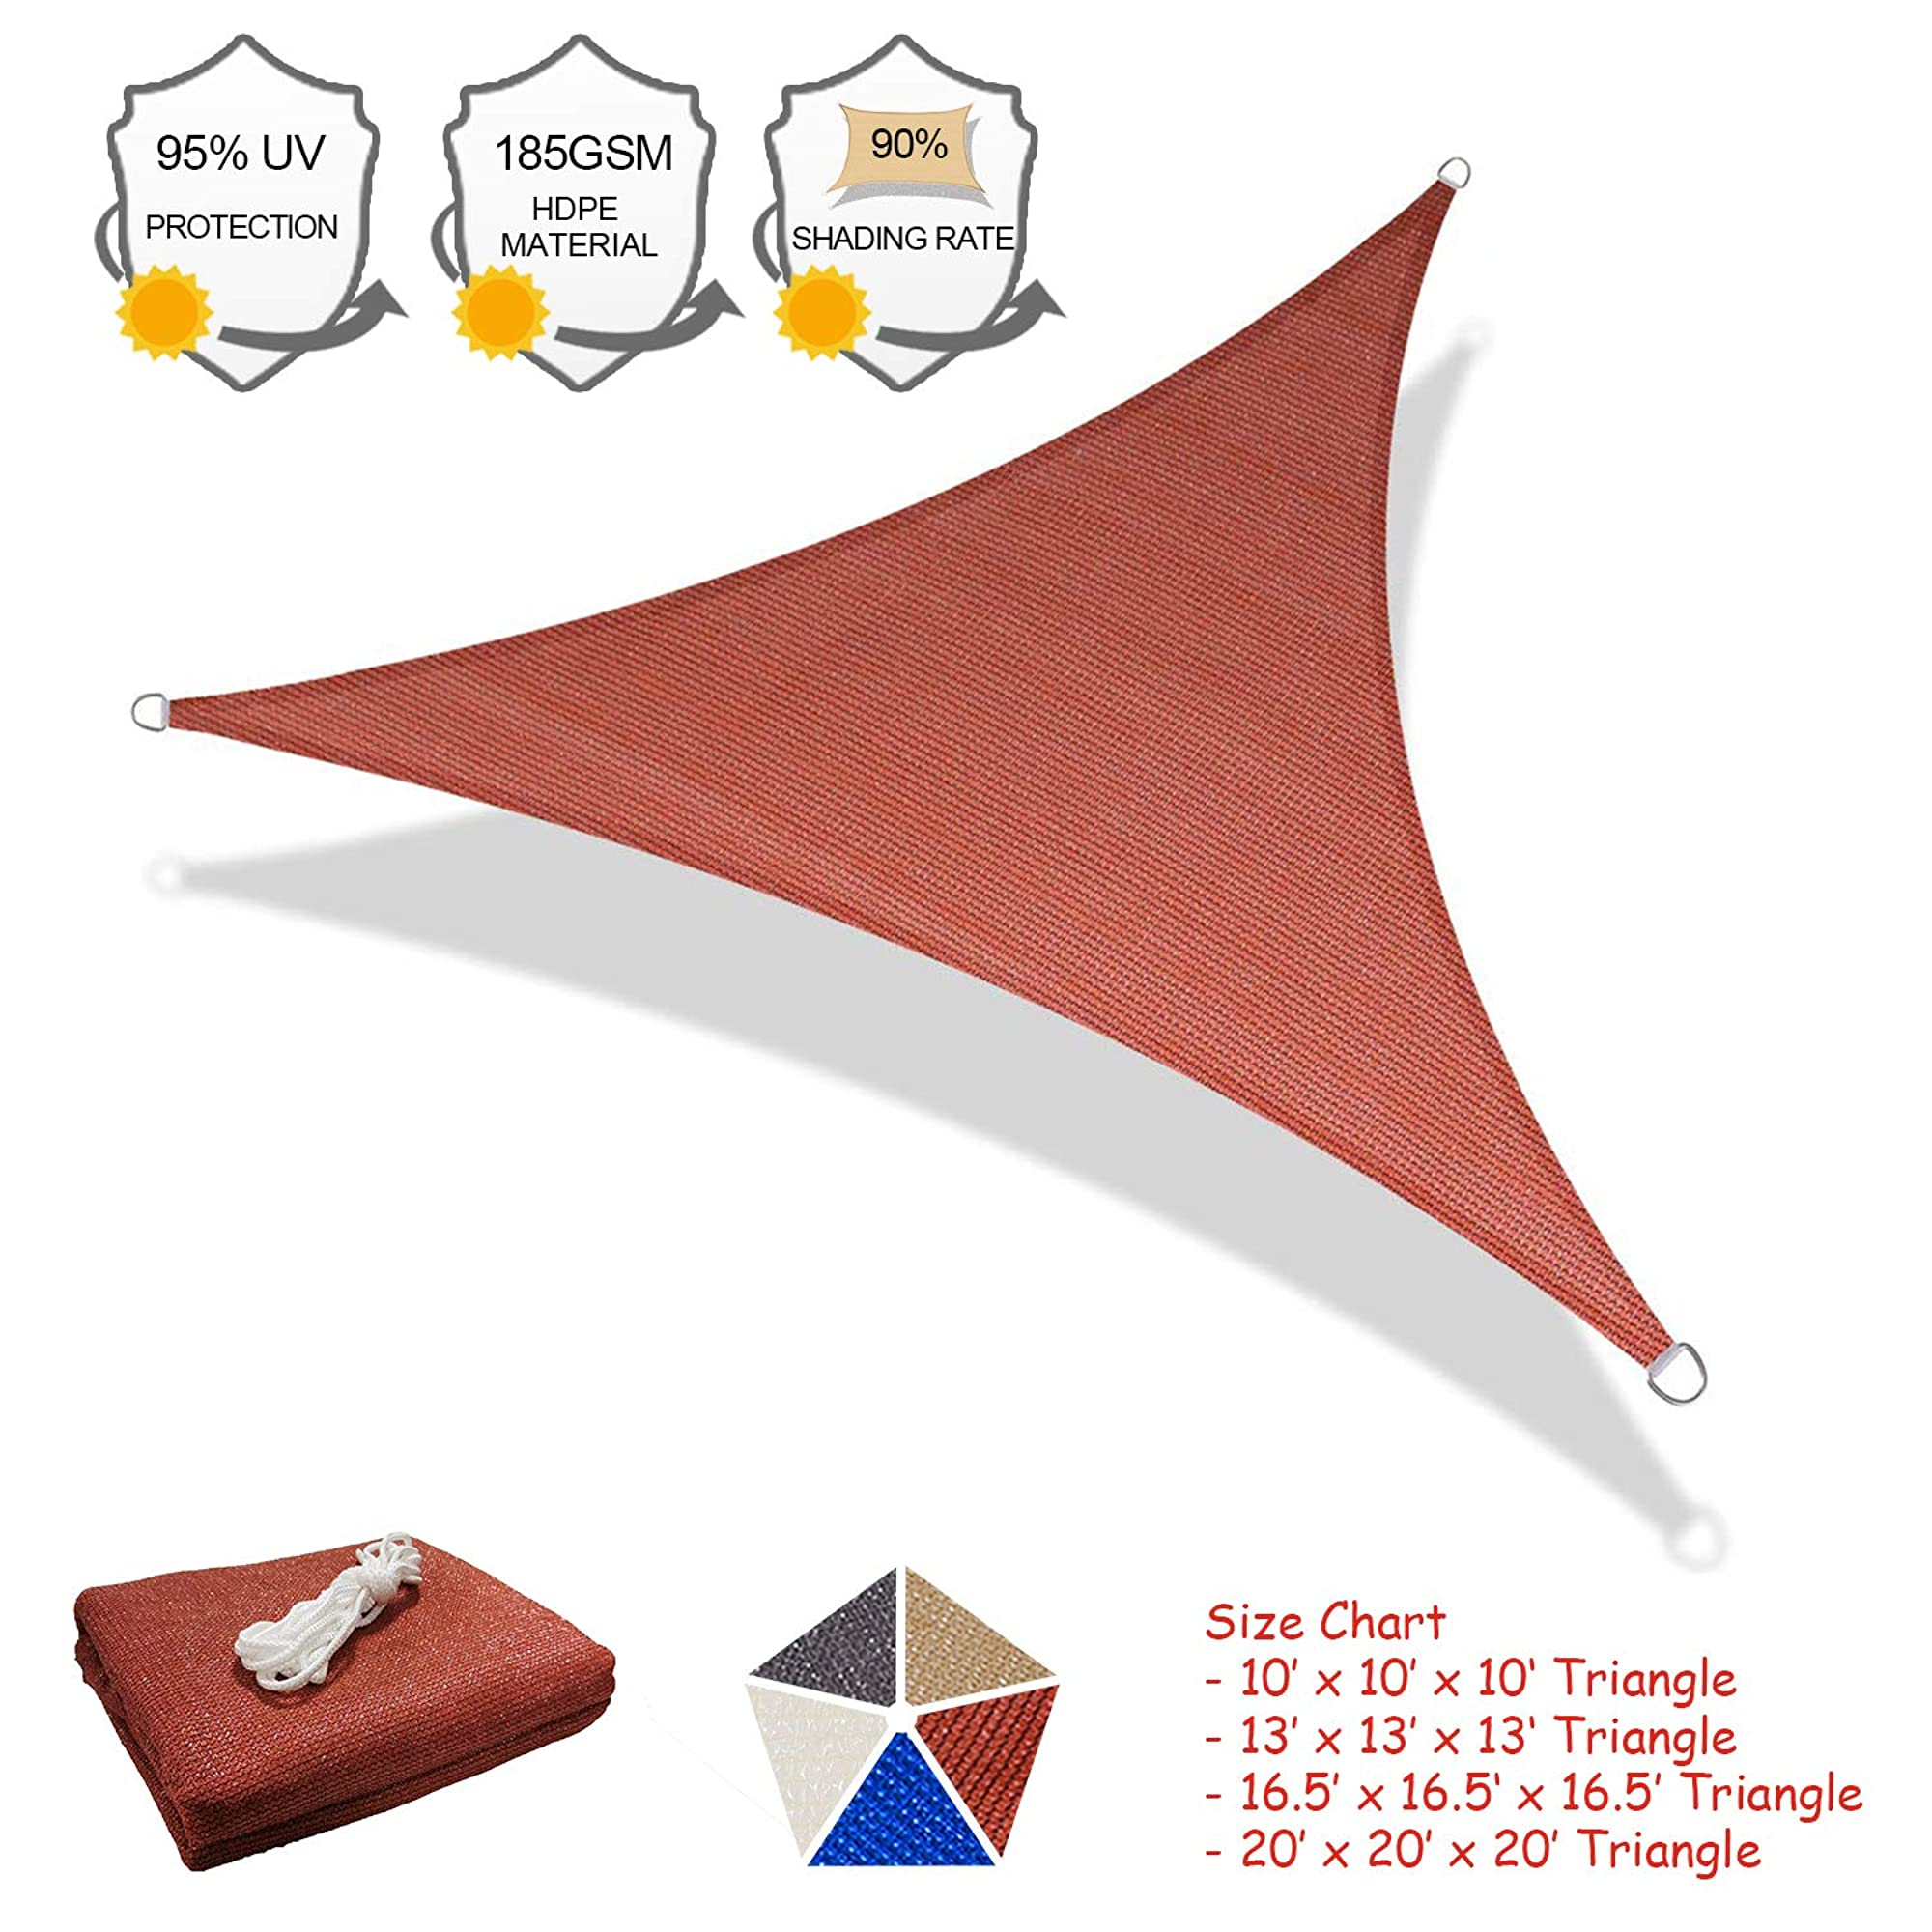 Triangle Sun Shade Sail. Sun Protection